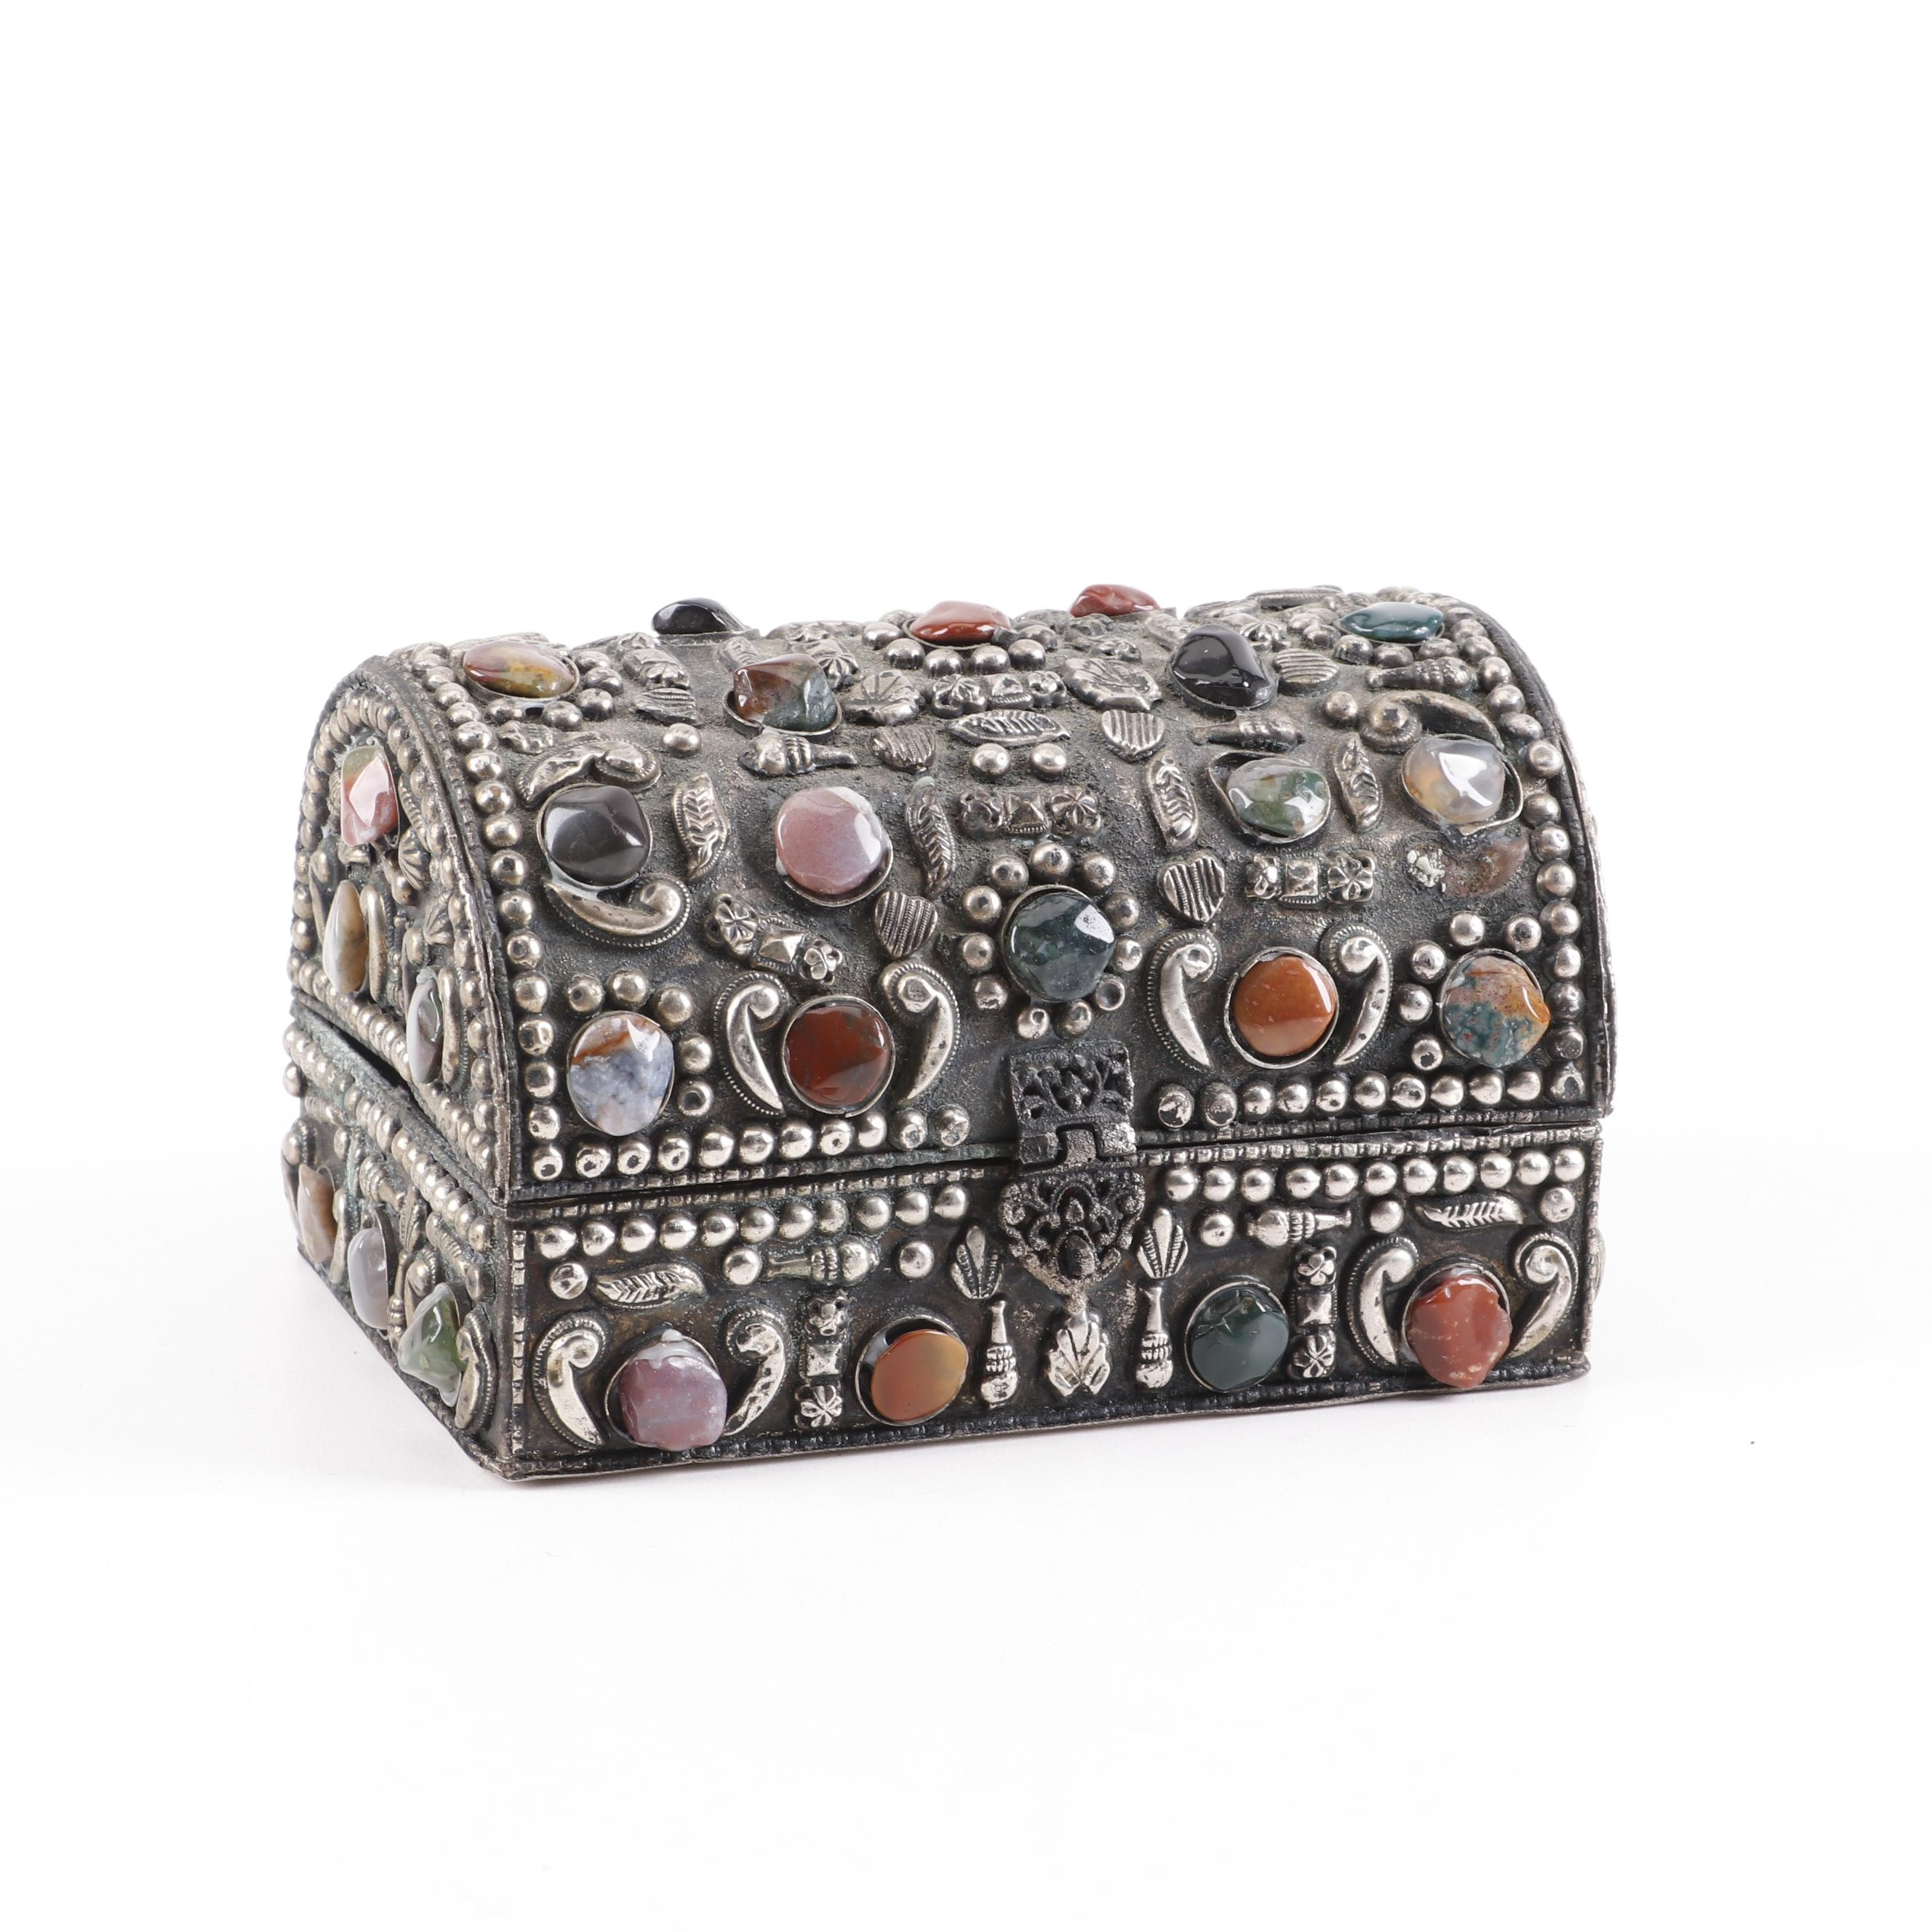 Indian Repoussé Brass and Gemstone Inlay Jewelry Box